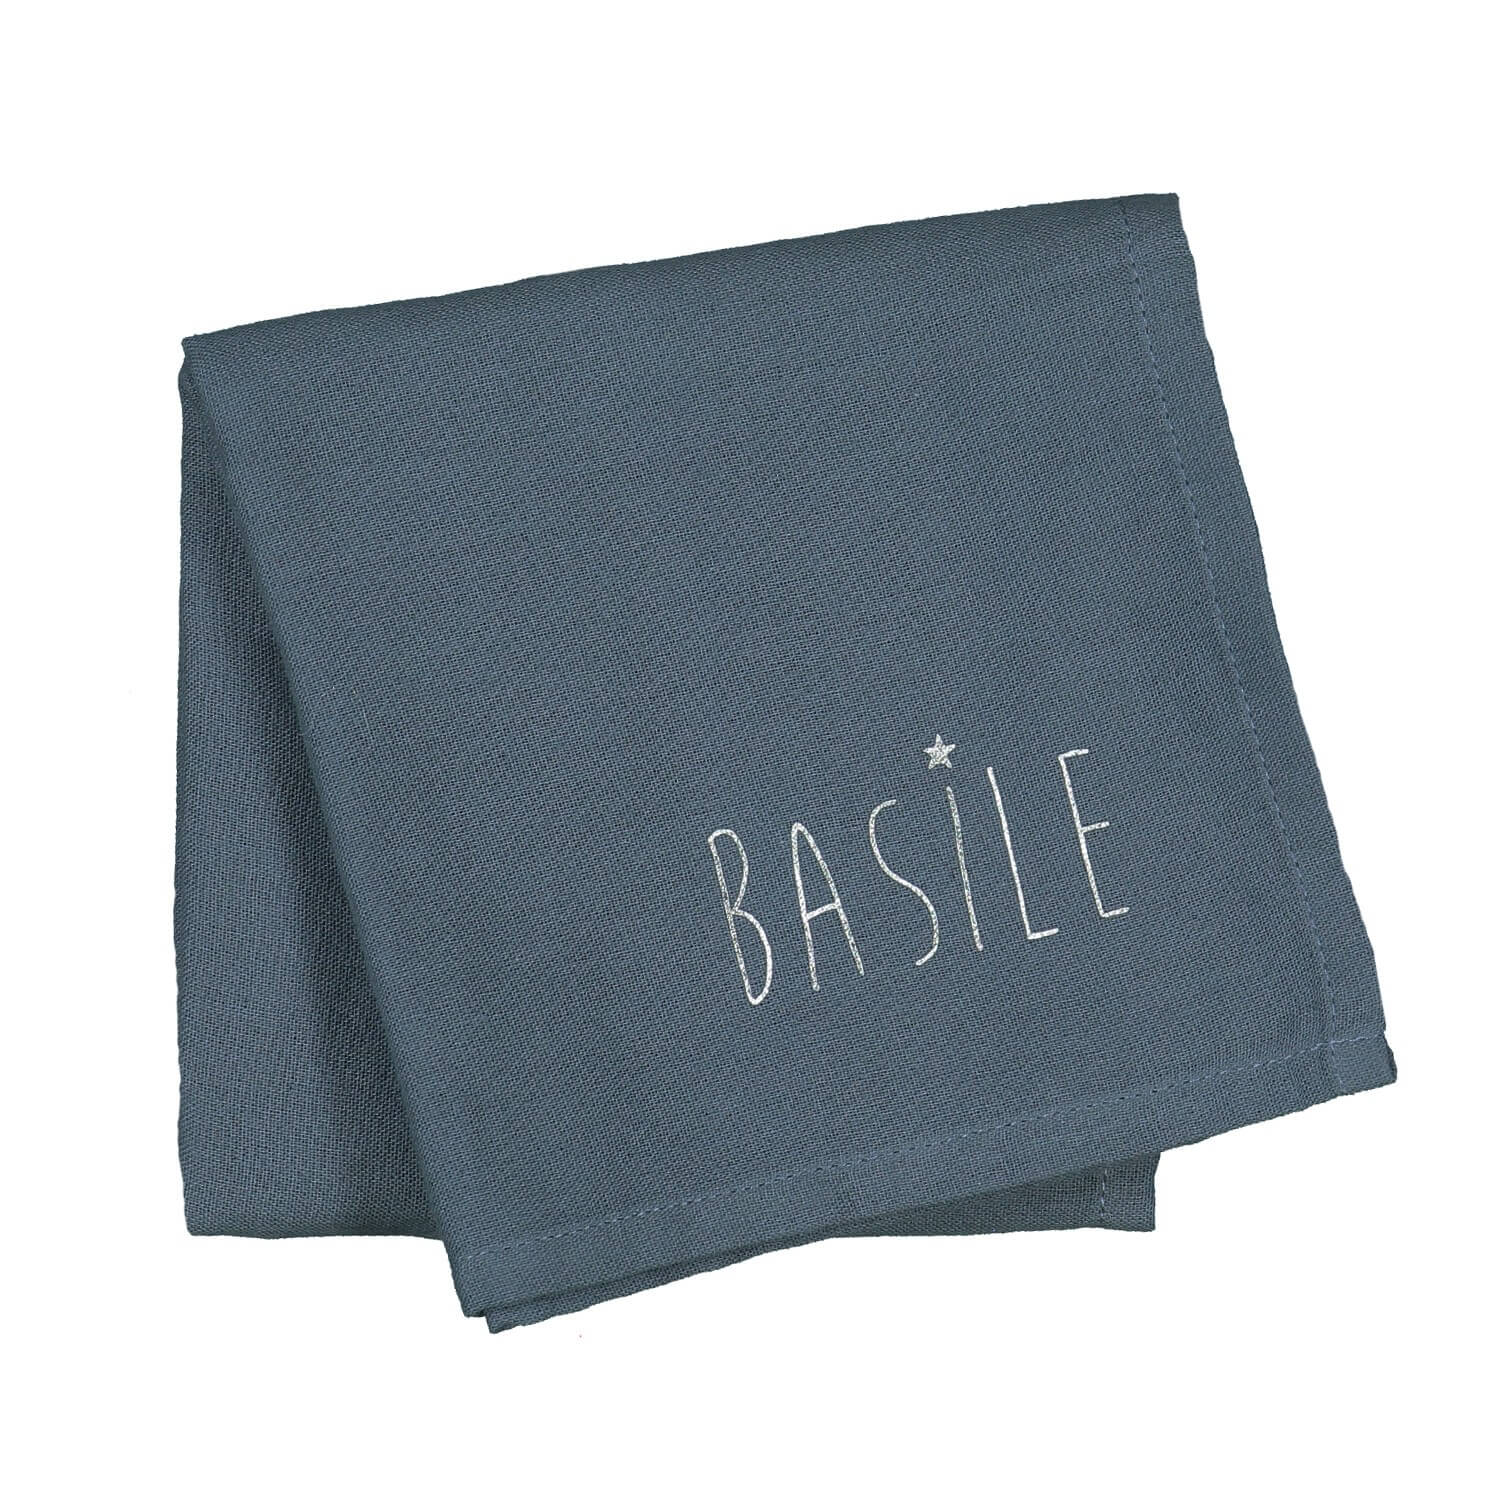 Baby's personalised cotton swaddle blanket 60x60